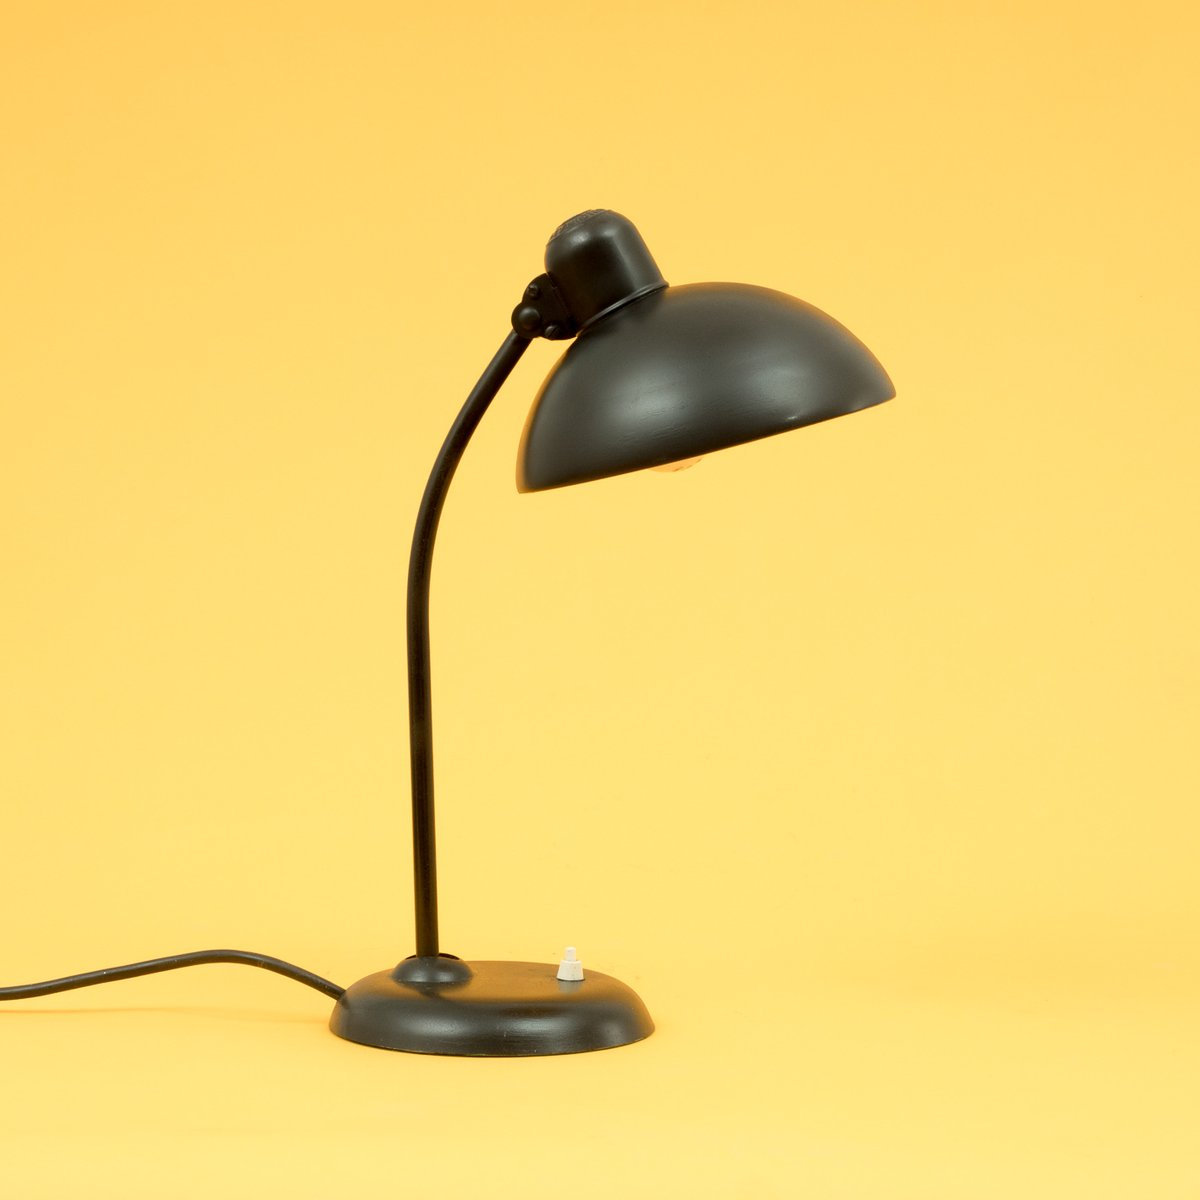 vintage 6556 bauhaus lamp from kaiser idell for sale at pamono. Black Bedroom Furniture Sets. Home Design Ideas